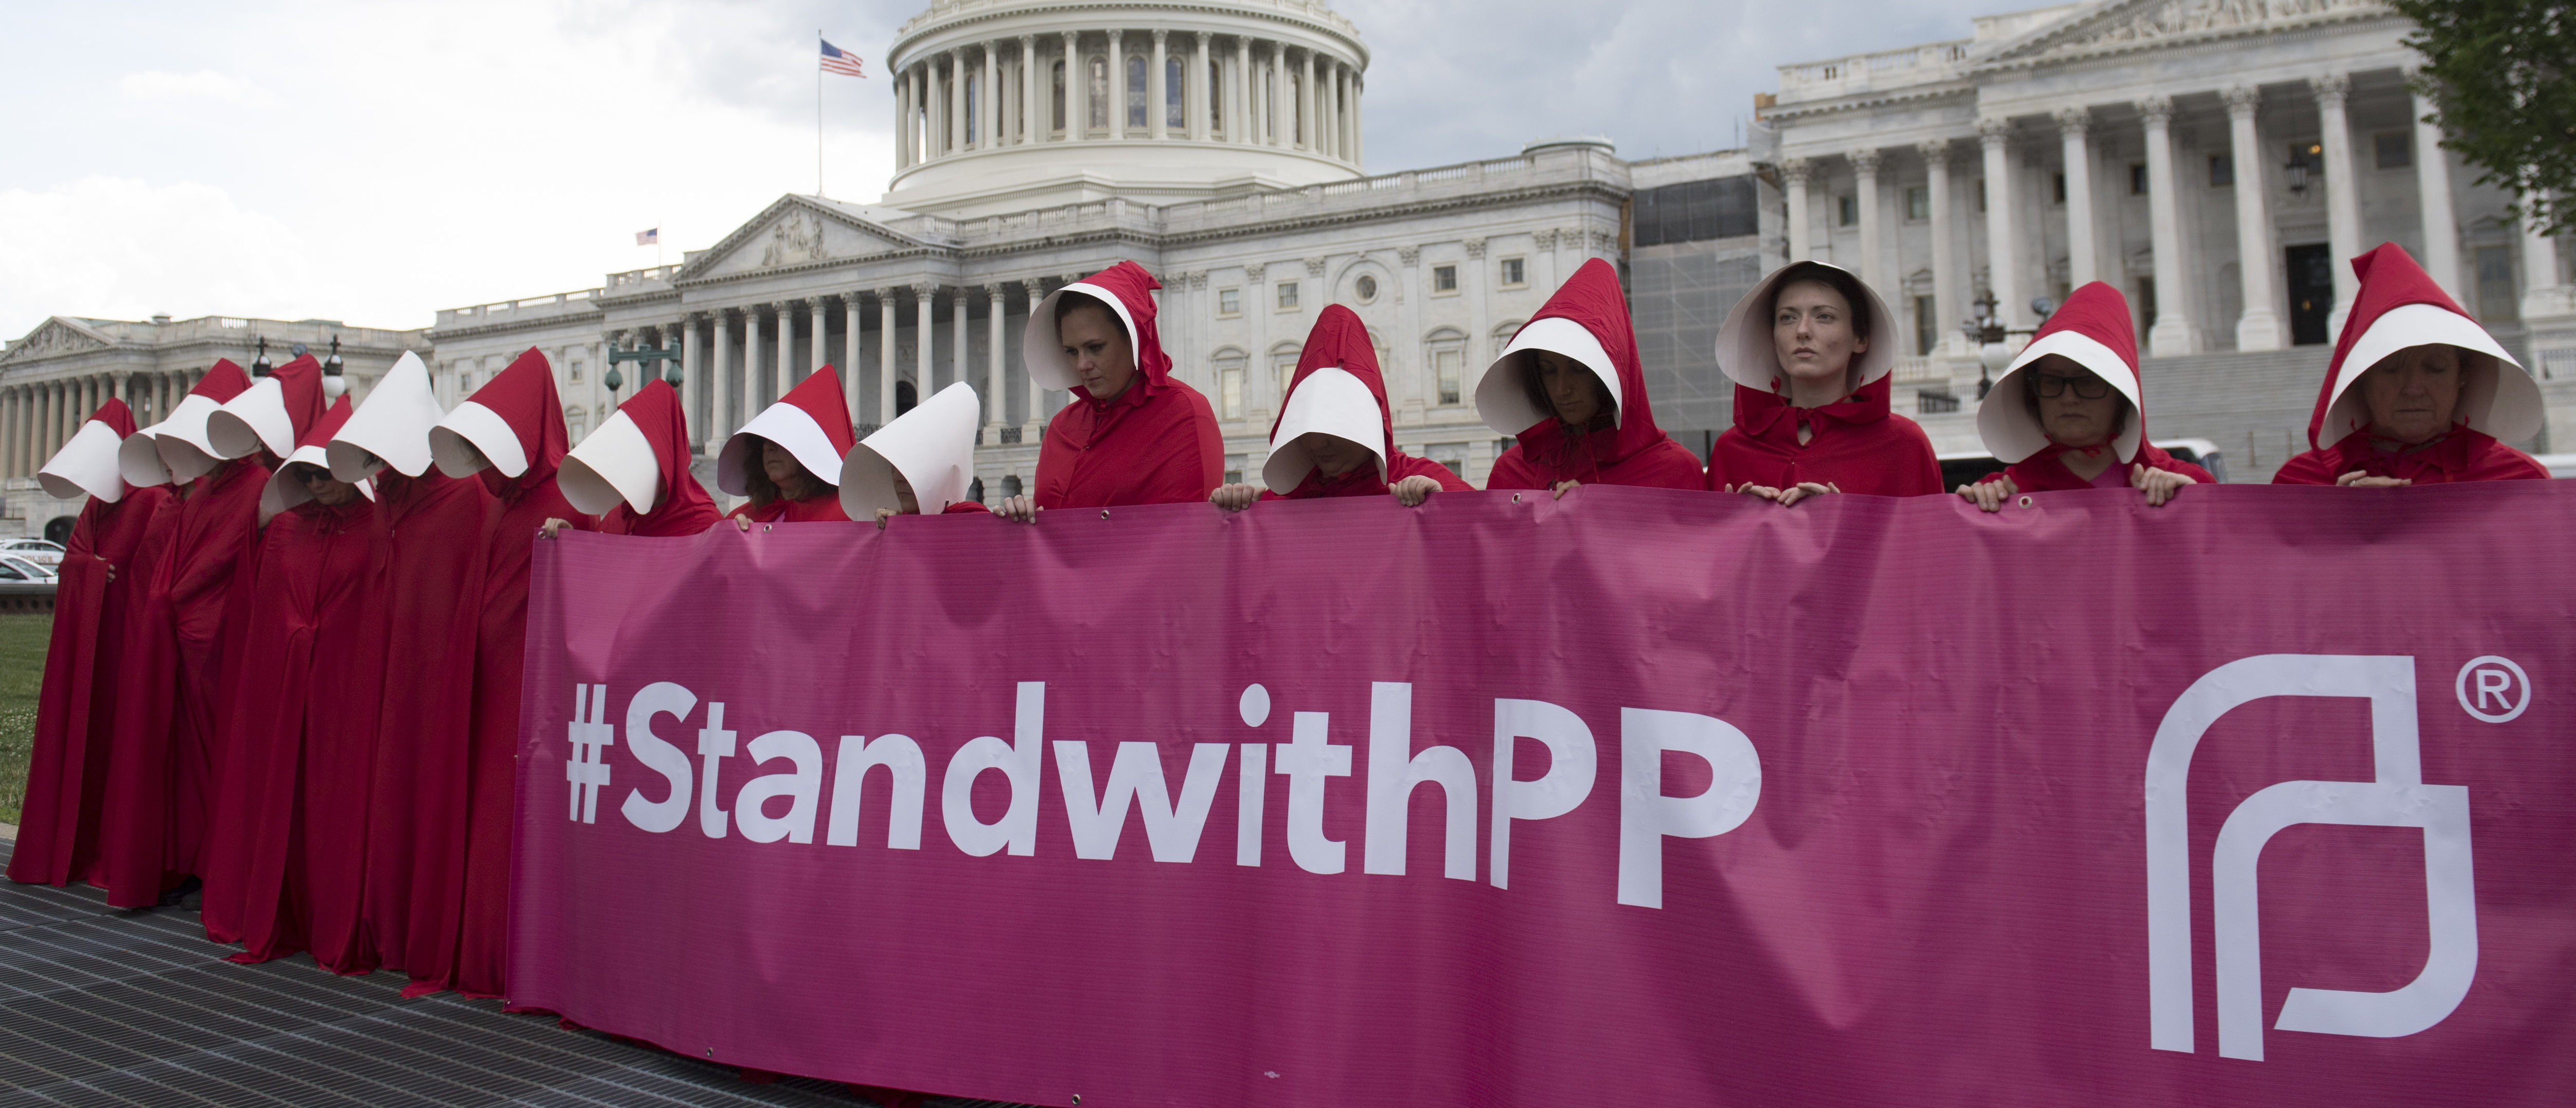 "Supporters of Planned Parenthood dressed as characters from ""The Handmaid's Tale,"" hold a rally as they protest the US Senate Republicans' healthcare bill outside the US Capitol in Washington, DC, June 27, 2017. / AFP PHOTO / SAUL LOEB (Photo credit should read SAUL LOEB/AFP/Getty Images)"